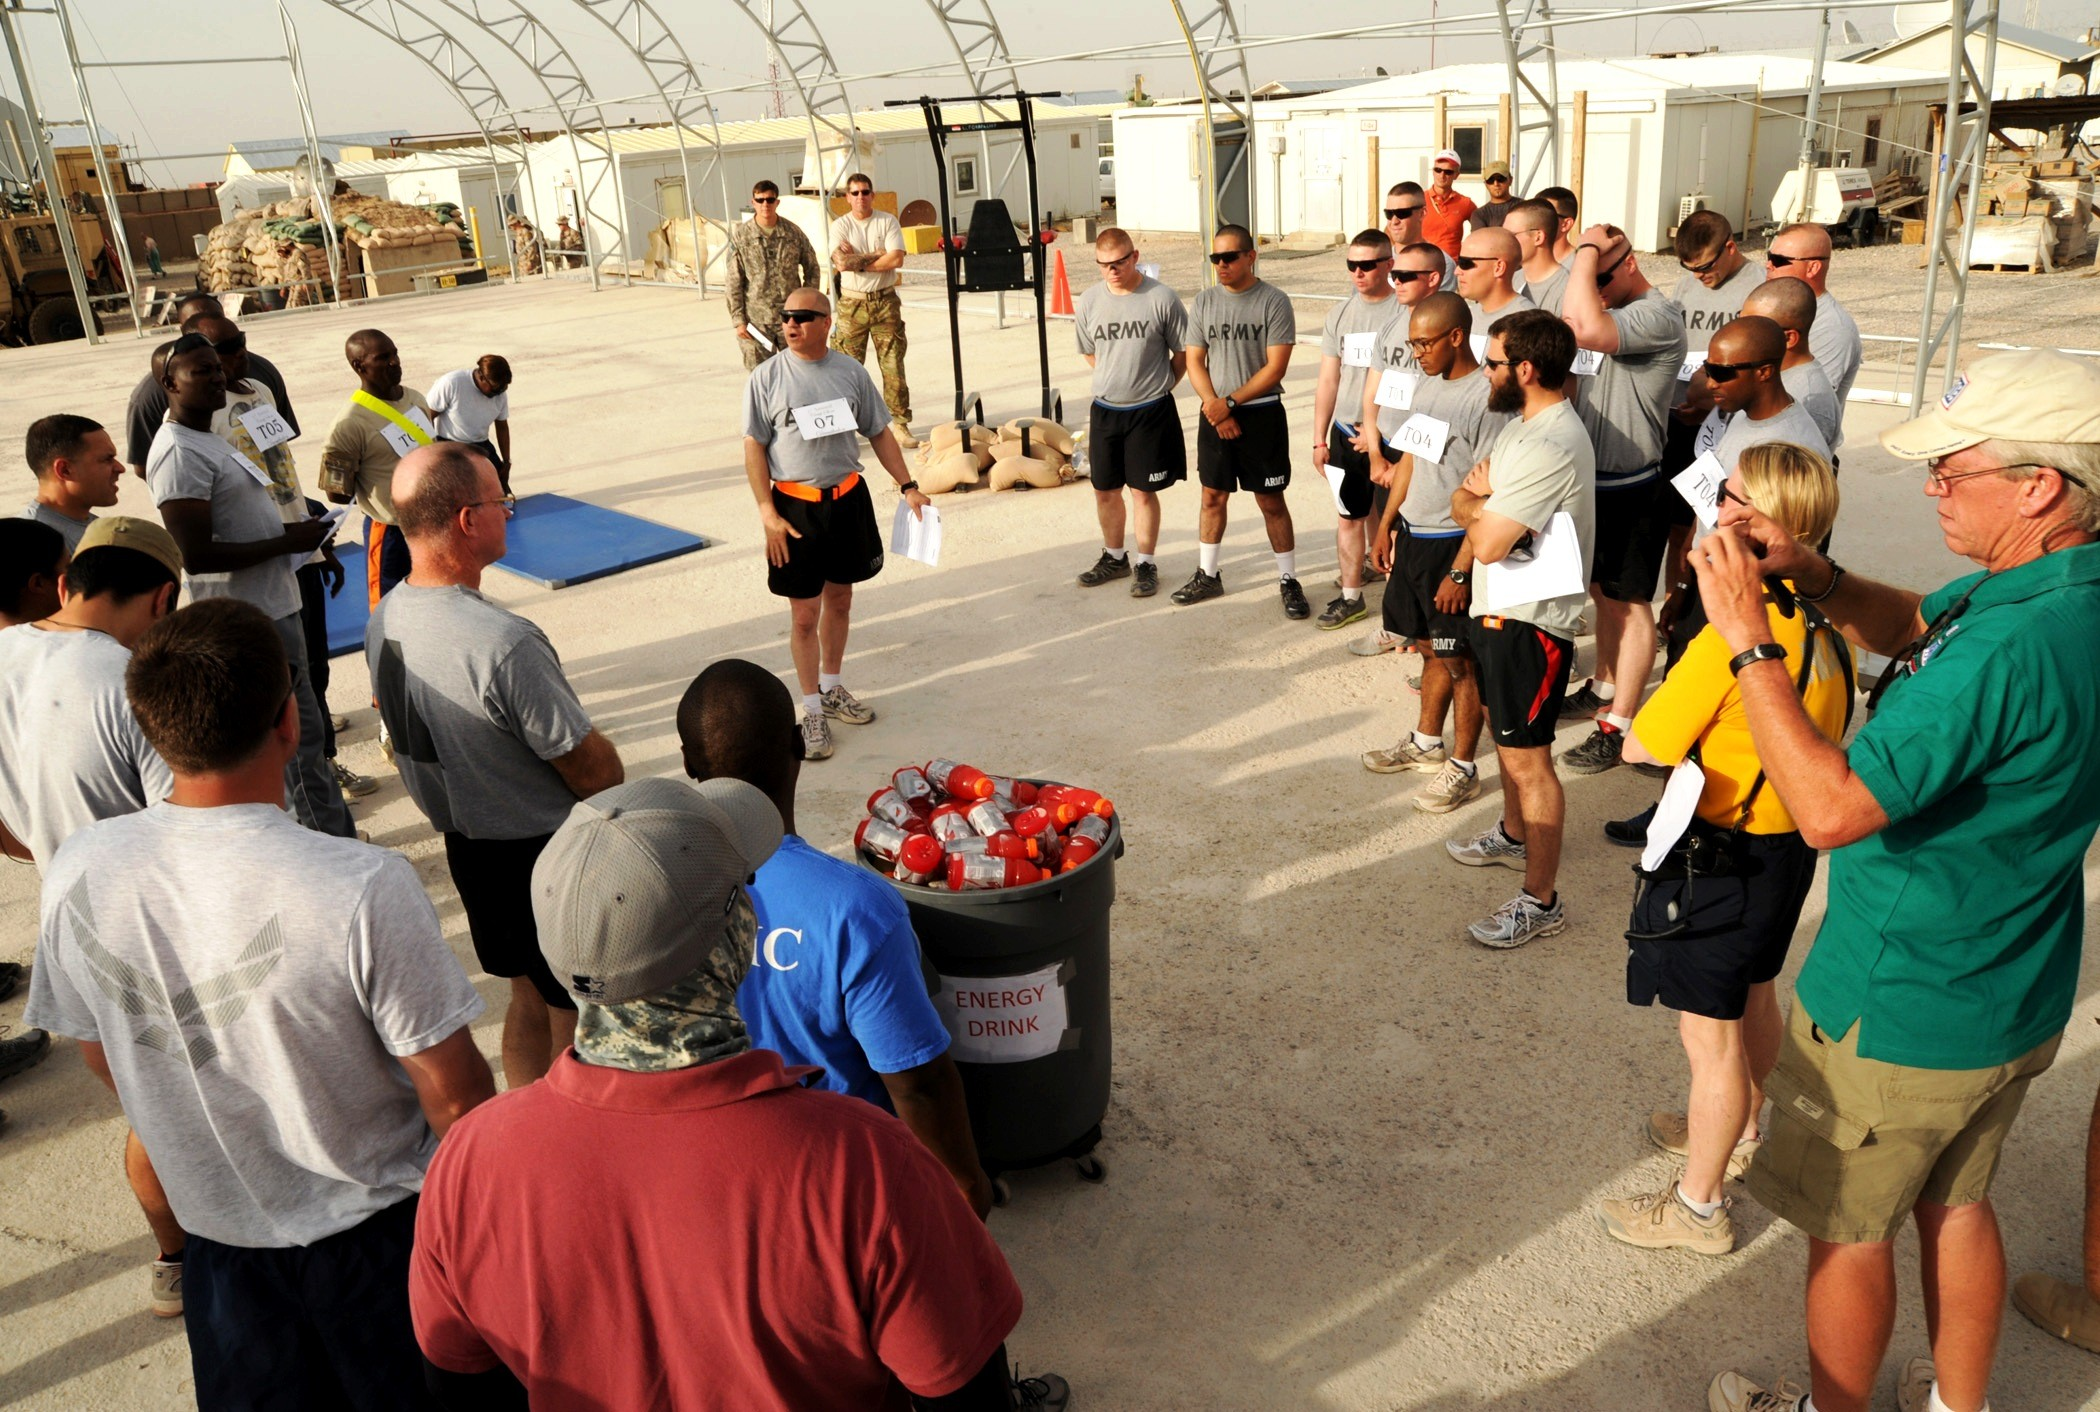 Afghanistan 39 s camp stone conducts first decathlon for Camp stone